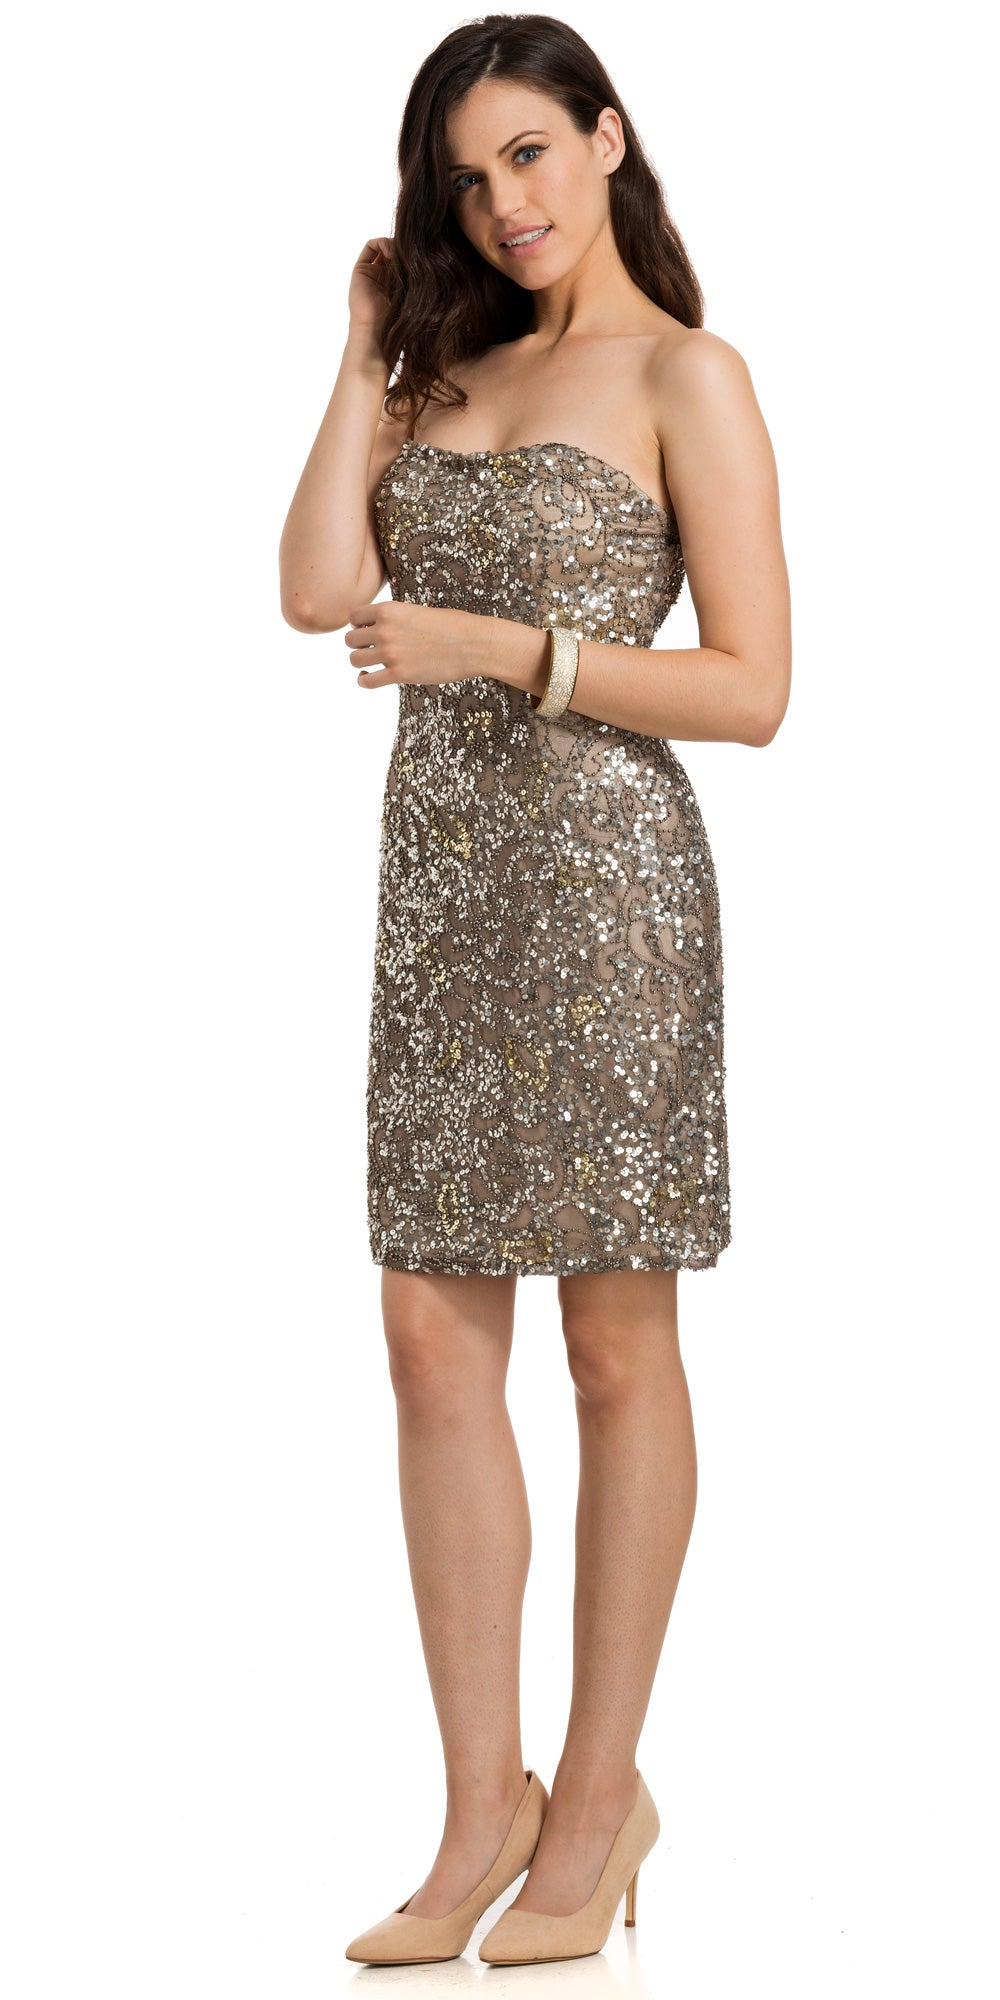 Main image of Strapless Short Prom Dress Fully Hand Beaded Sequins